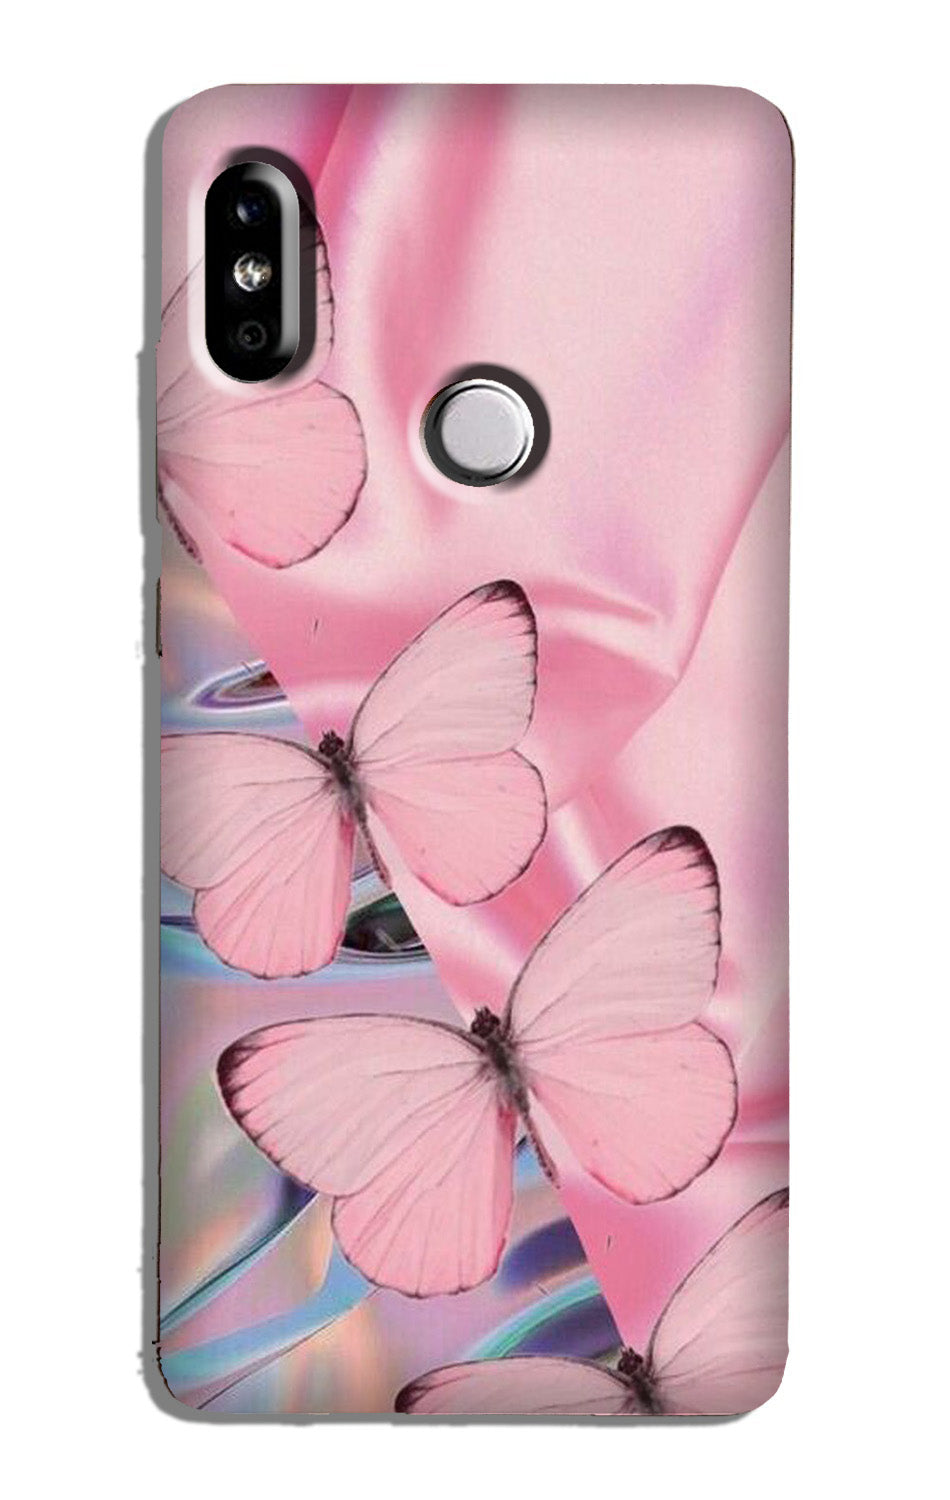 Butterflies Case for Redmi Note 6 Pro